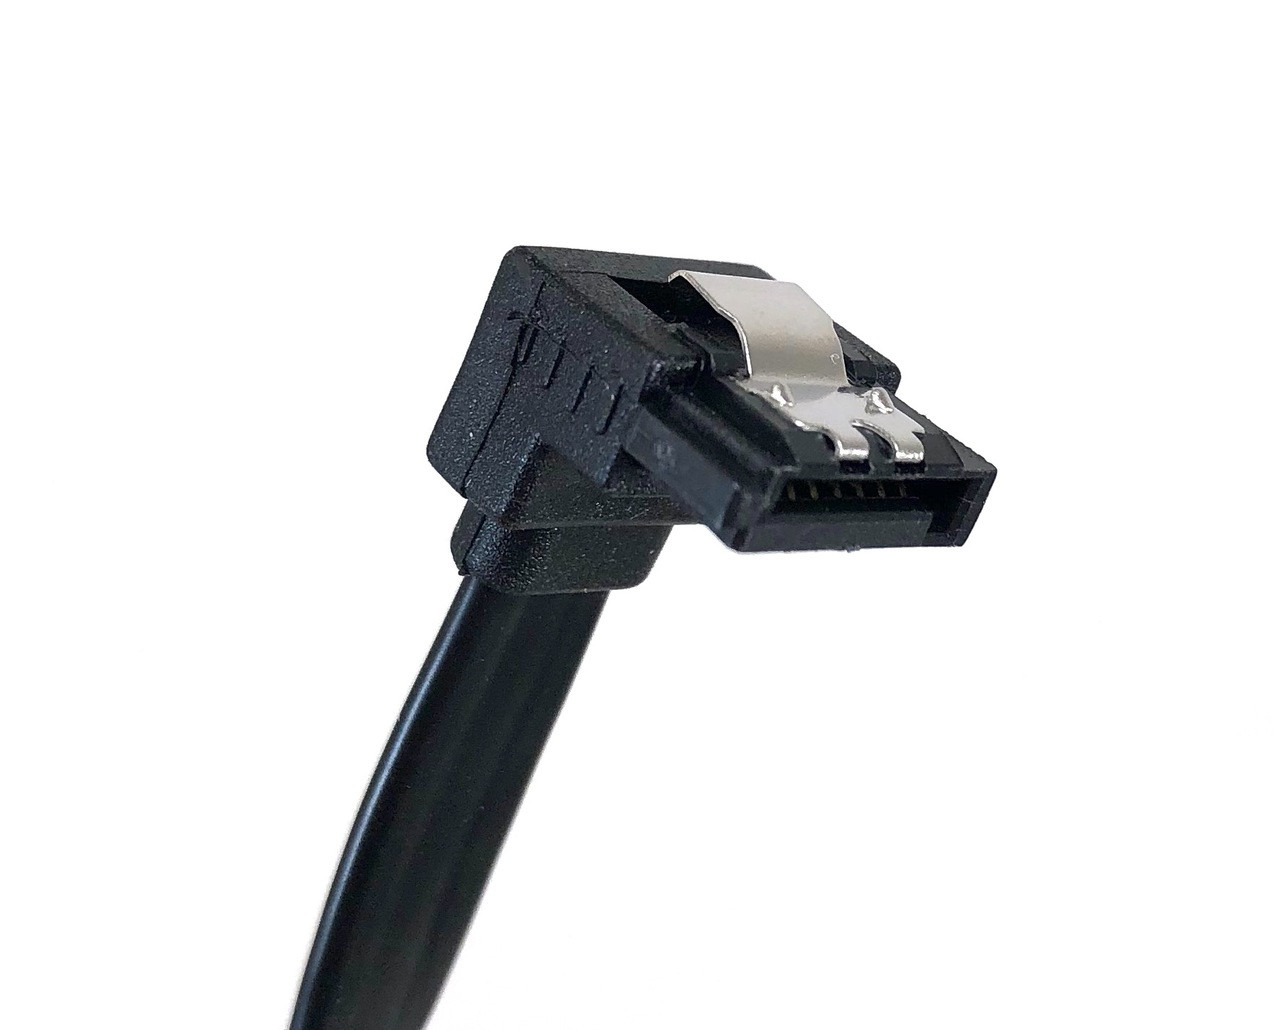 """20"""" SATA III 6 GB/s 180° (Straight) to 90° (Right Angle) Cable w/Locking Latch - Black"""